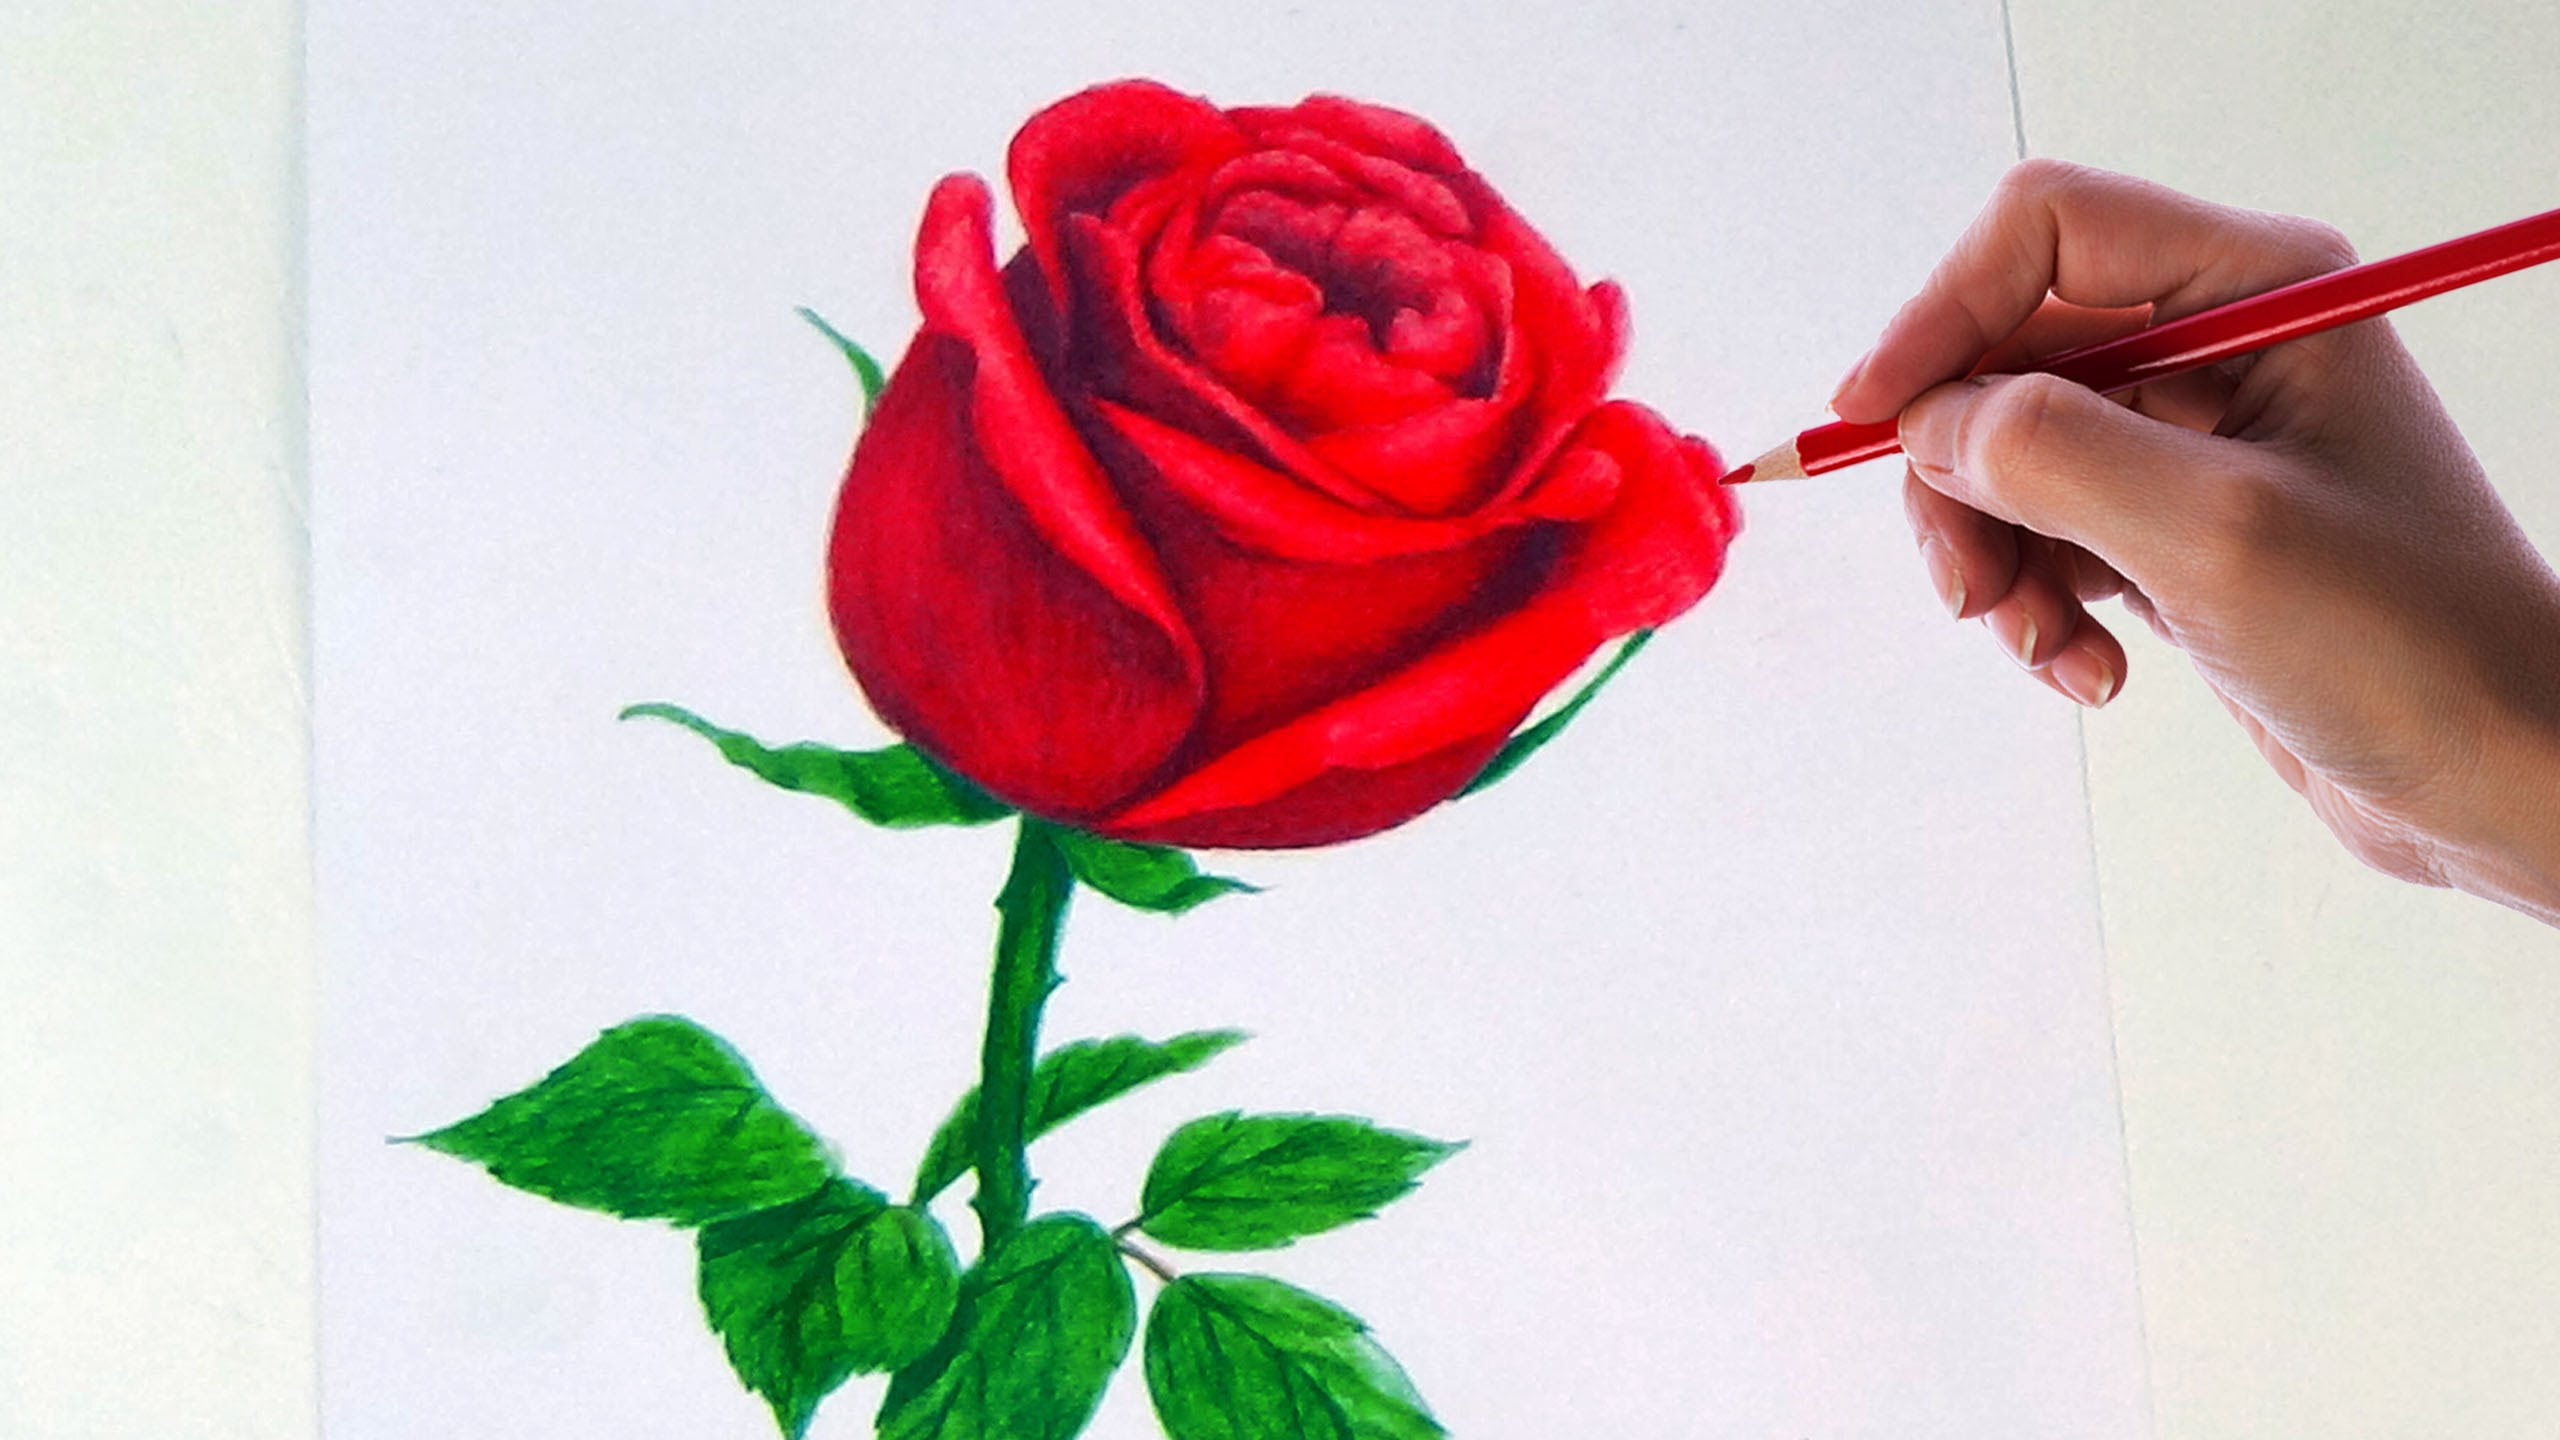 Drawn red rose shaded Colored Rose Rose YouTube Drawing